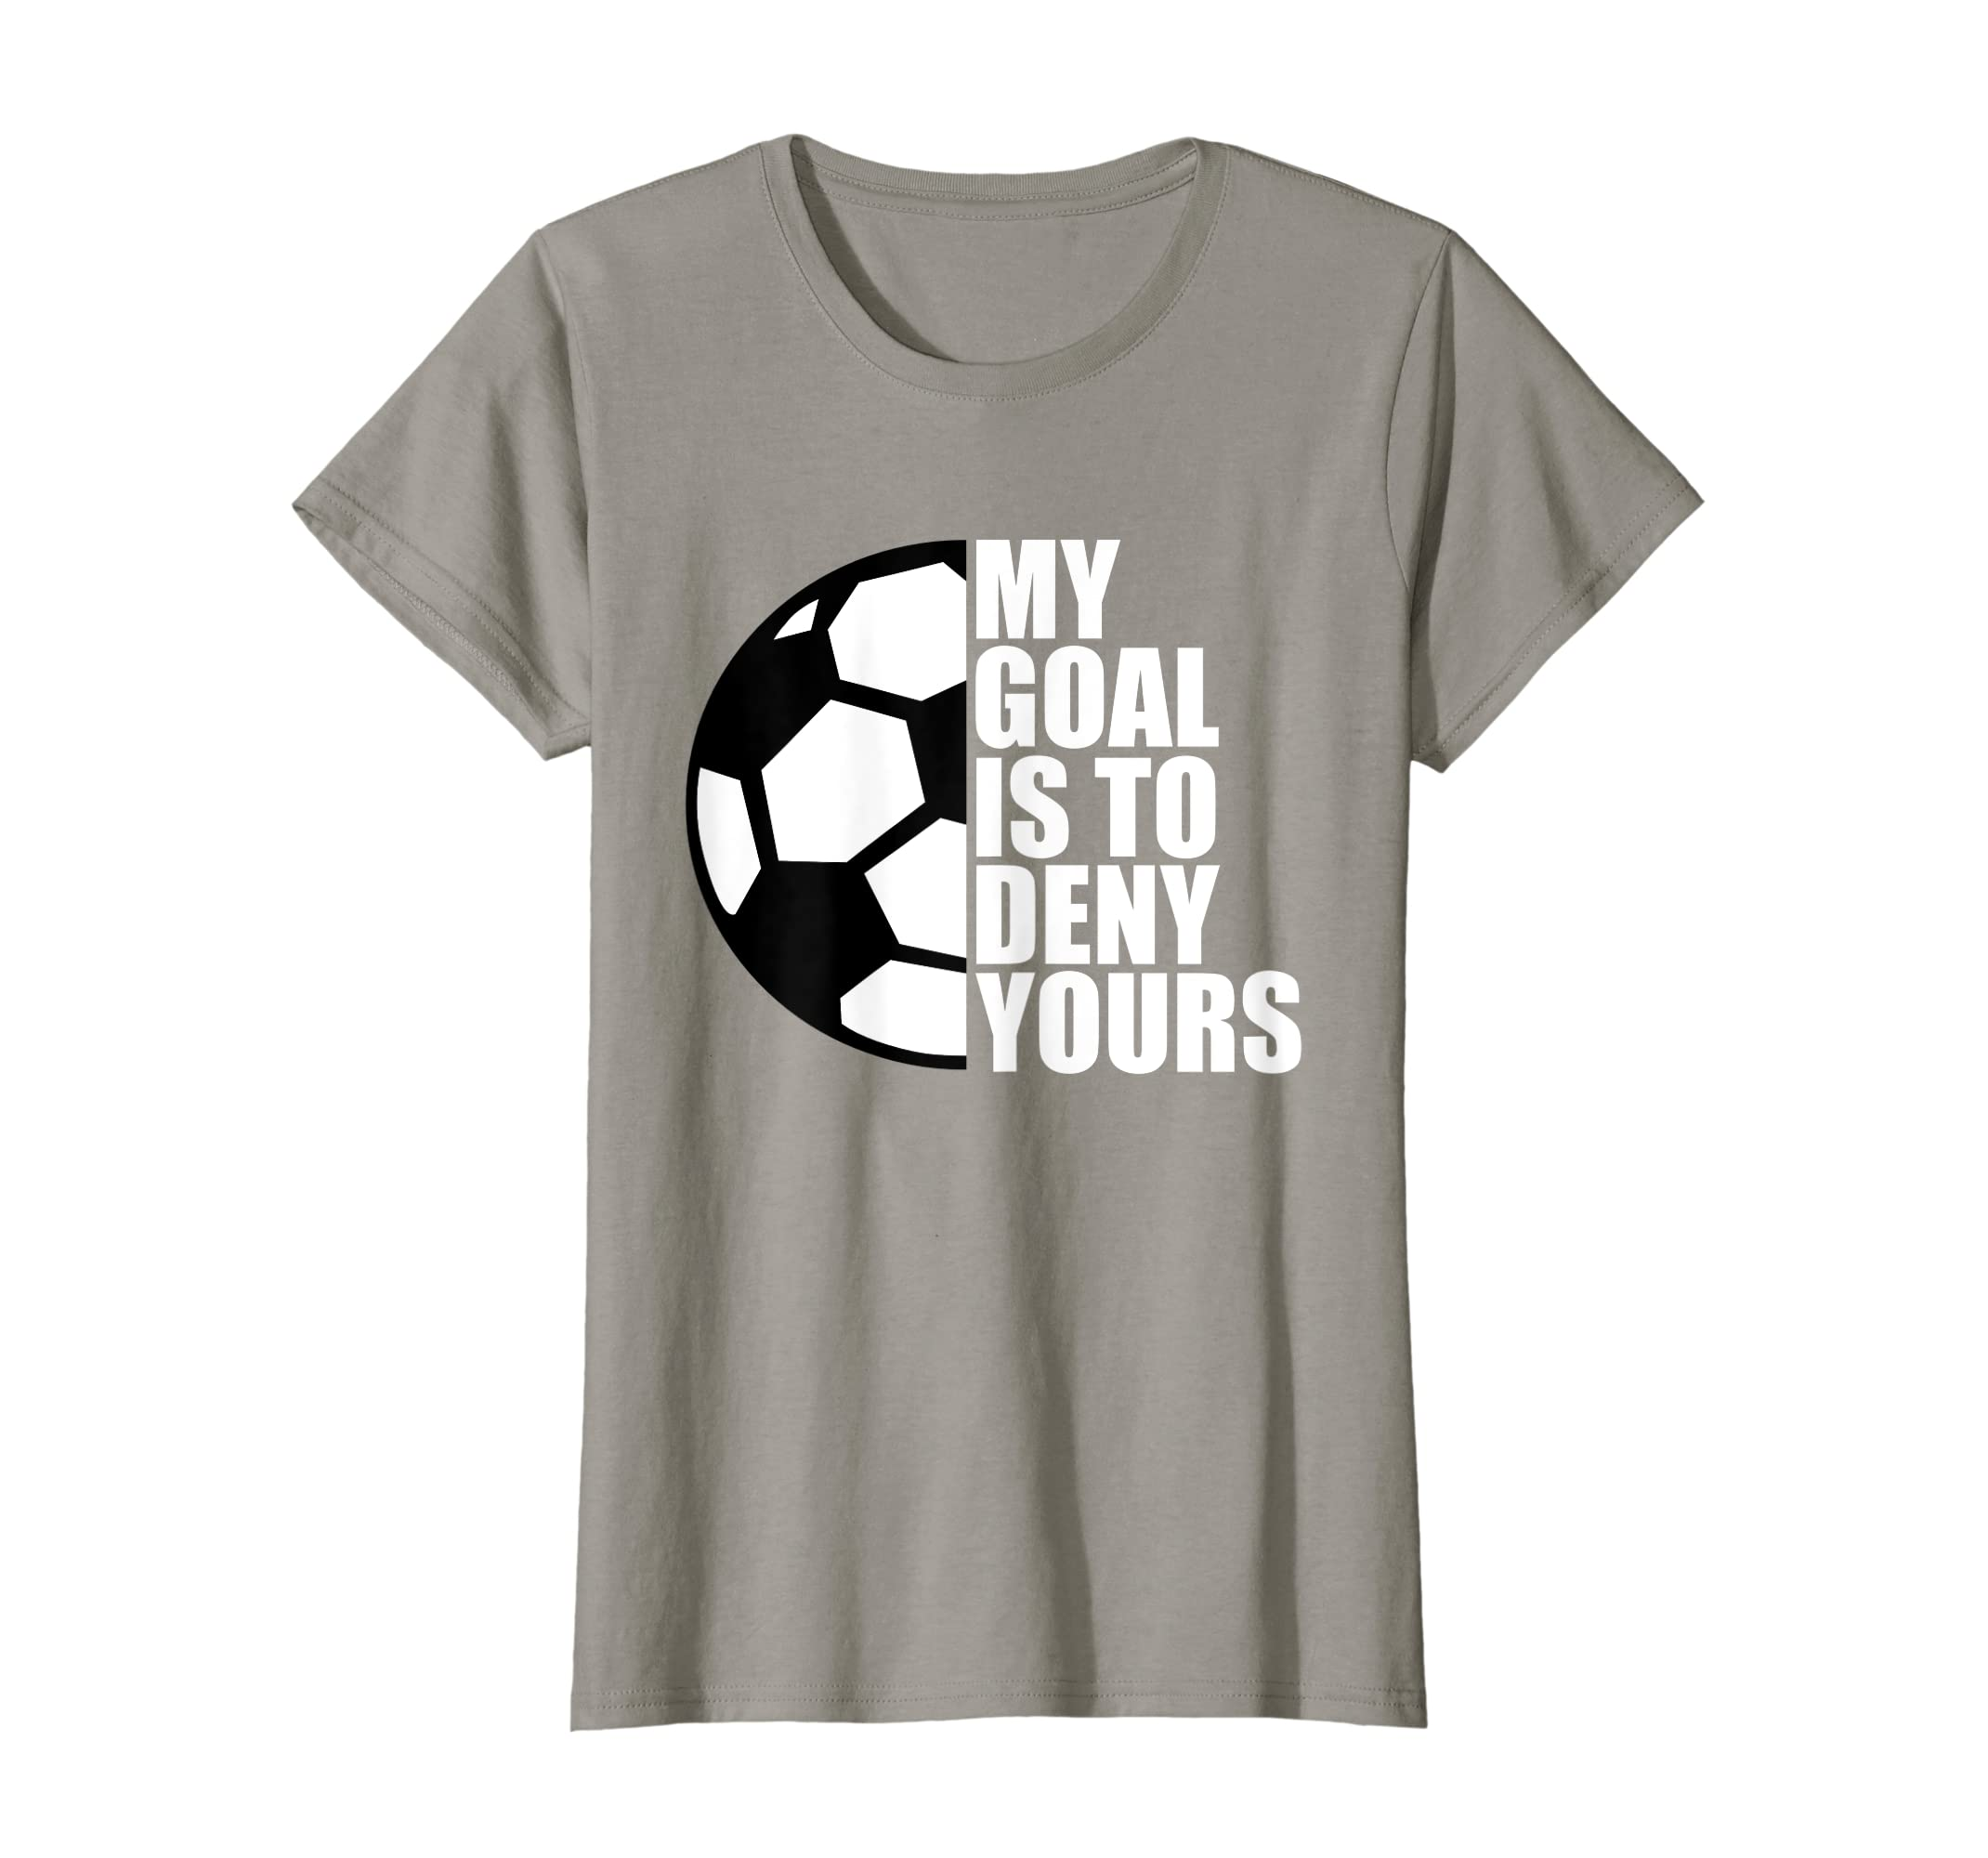 6926106c377 Amazon.com: My Goal Is To Deny Yours Soccer Goalie Gift T-Shirt: Clothing